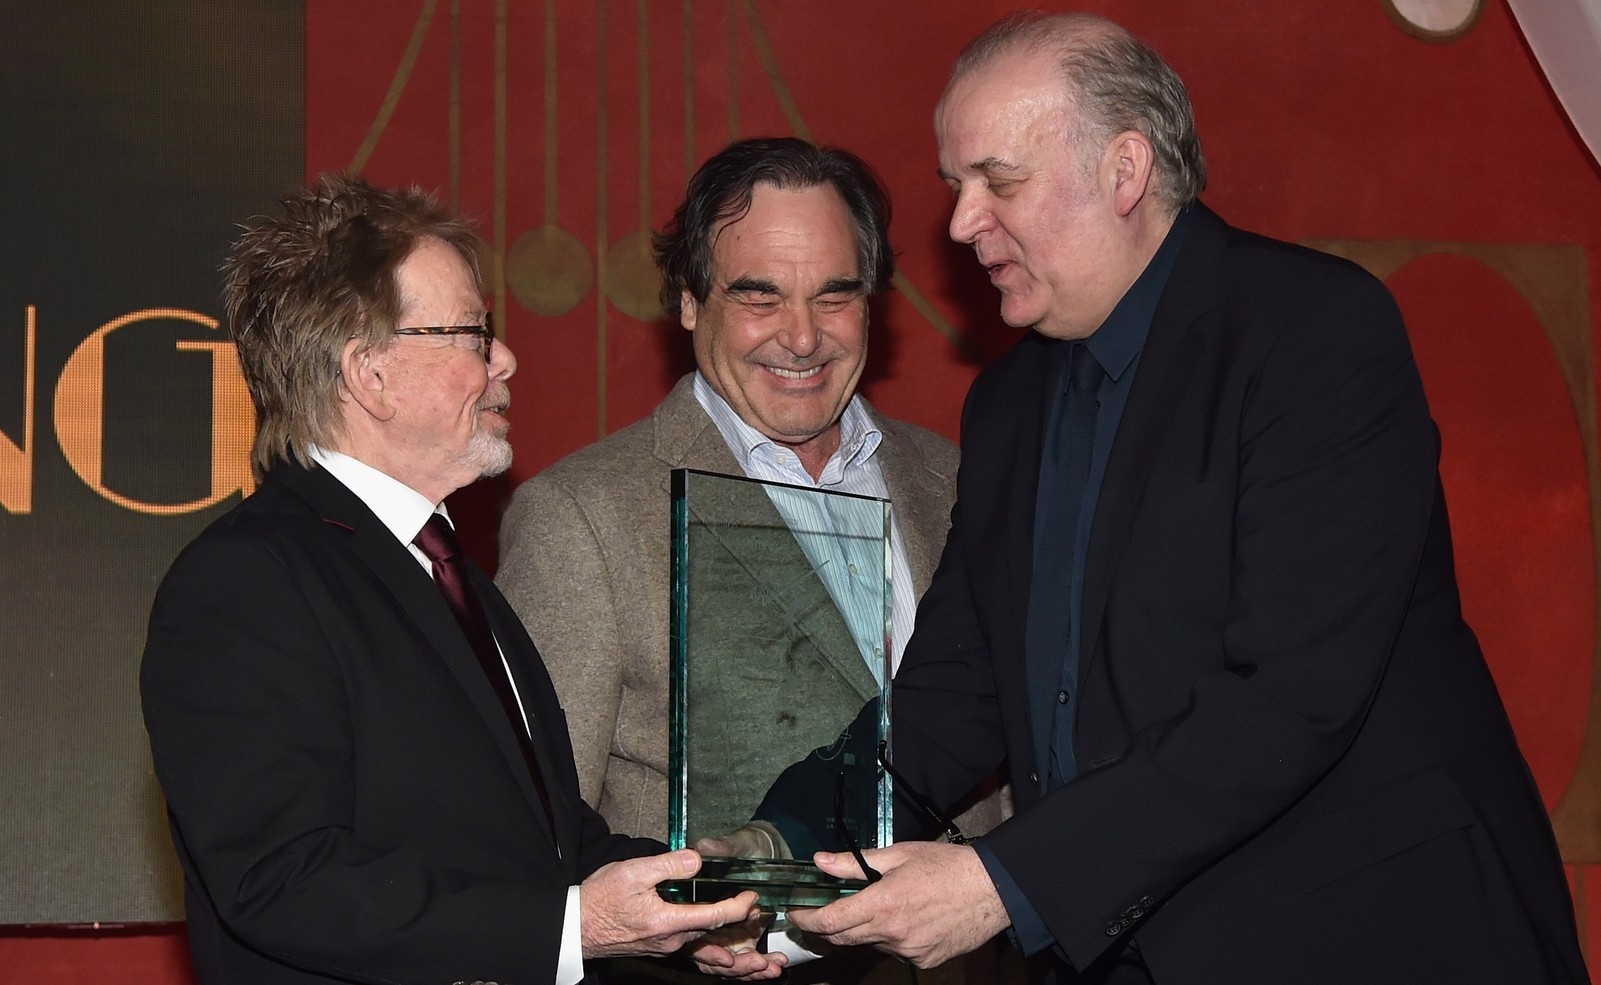 Craig Armstrong accepts the Henry Mancini Award from ASCAP President and Chairman Paul Williams and director Oliver Stone during the 2016 ASCAP Screen Music Awards